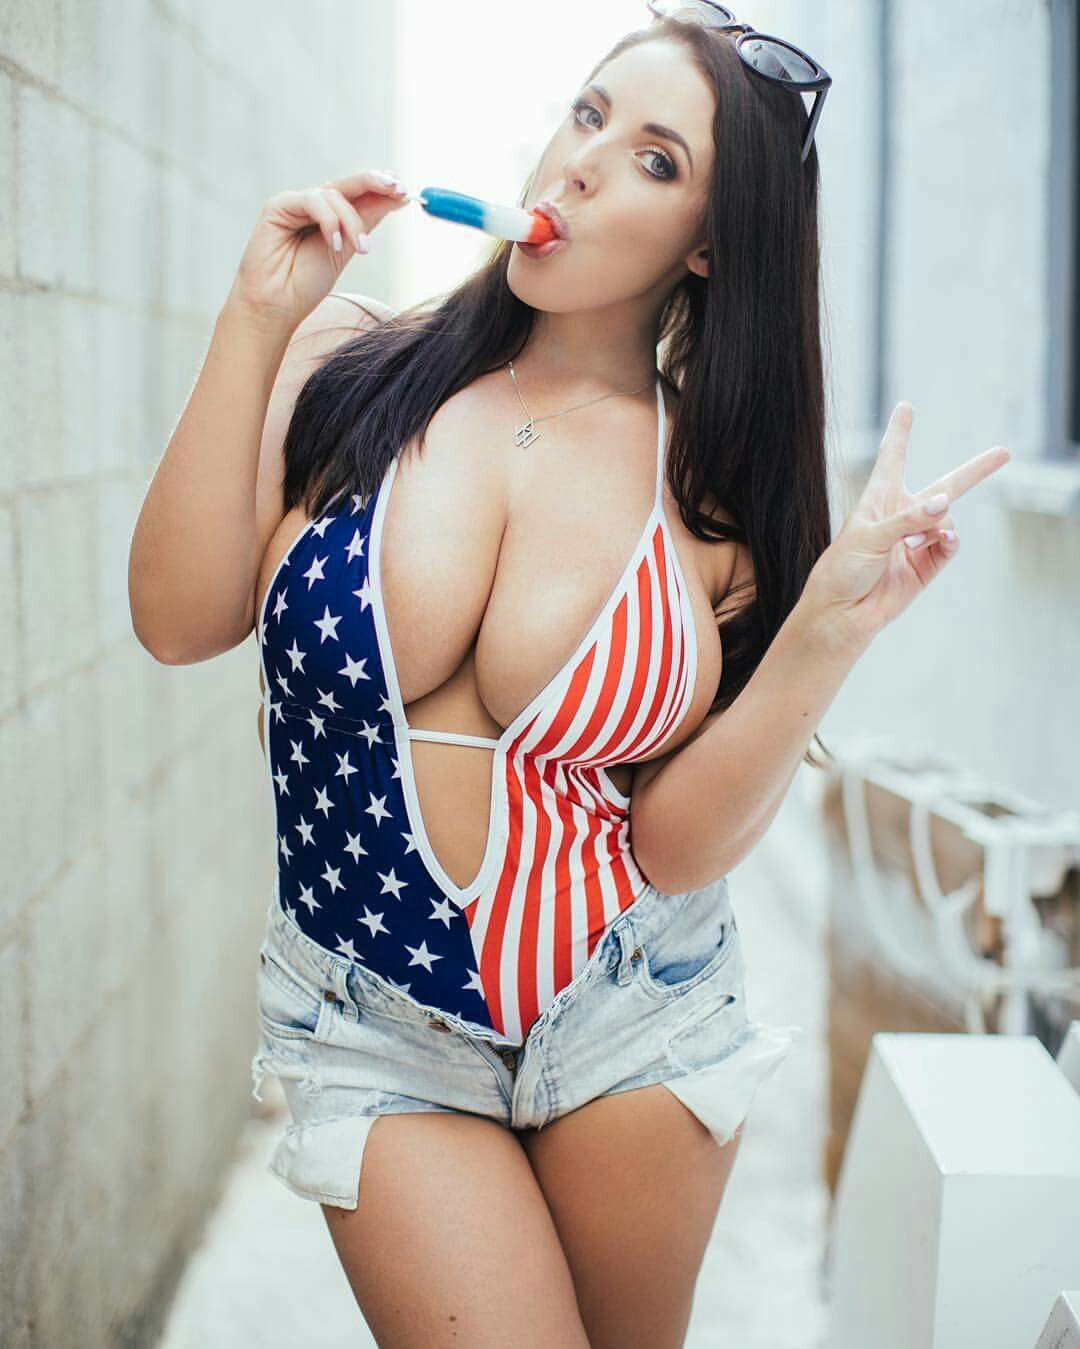 Pin By Jj Dubbya On Angela White  Angela White, Sexy